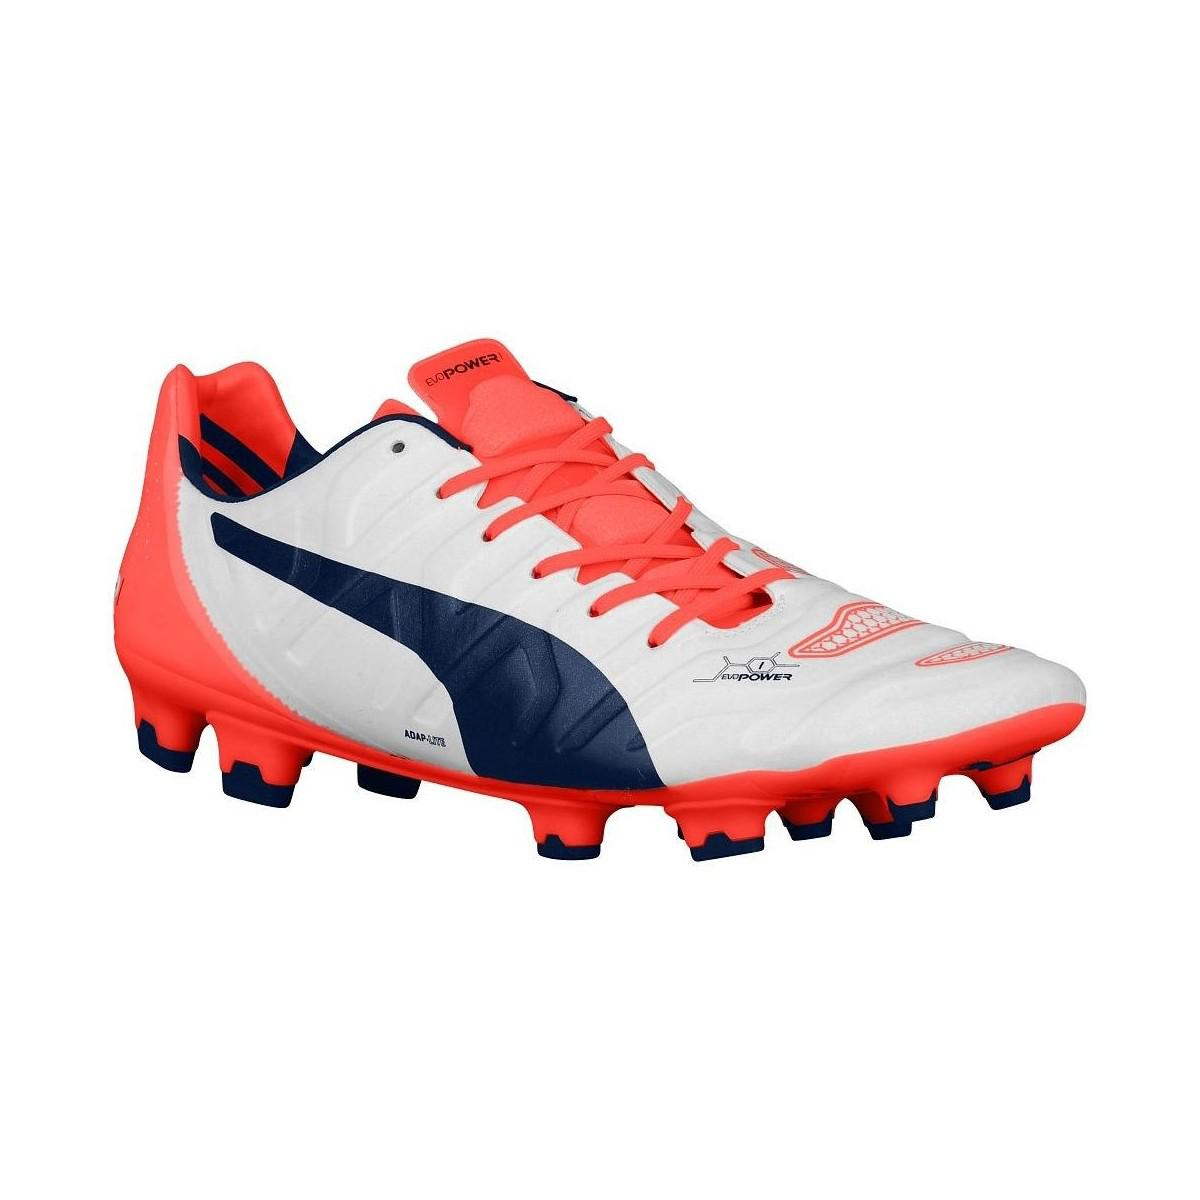 Puma Evopower 1.2 Fg Football Boots Women s Football Boots In White ... 5883592ea1